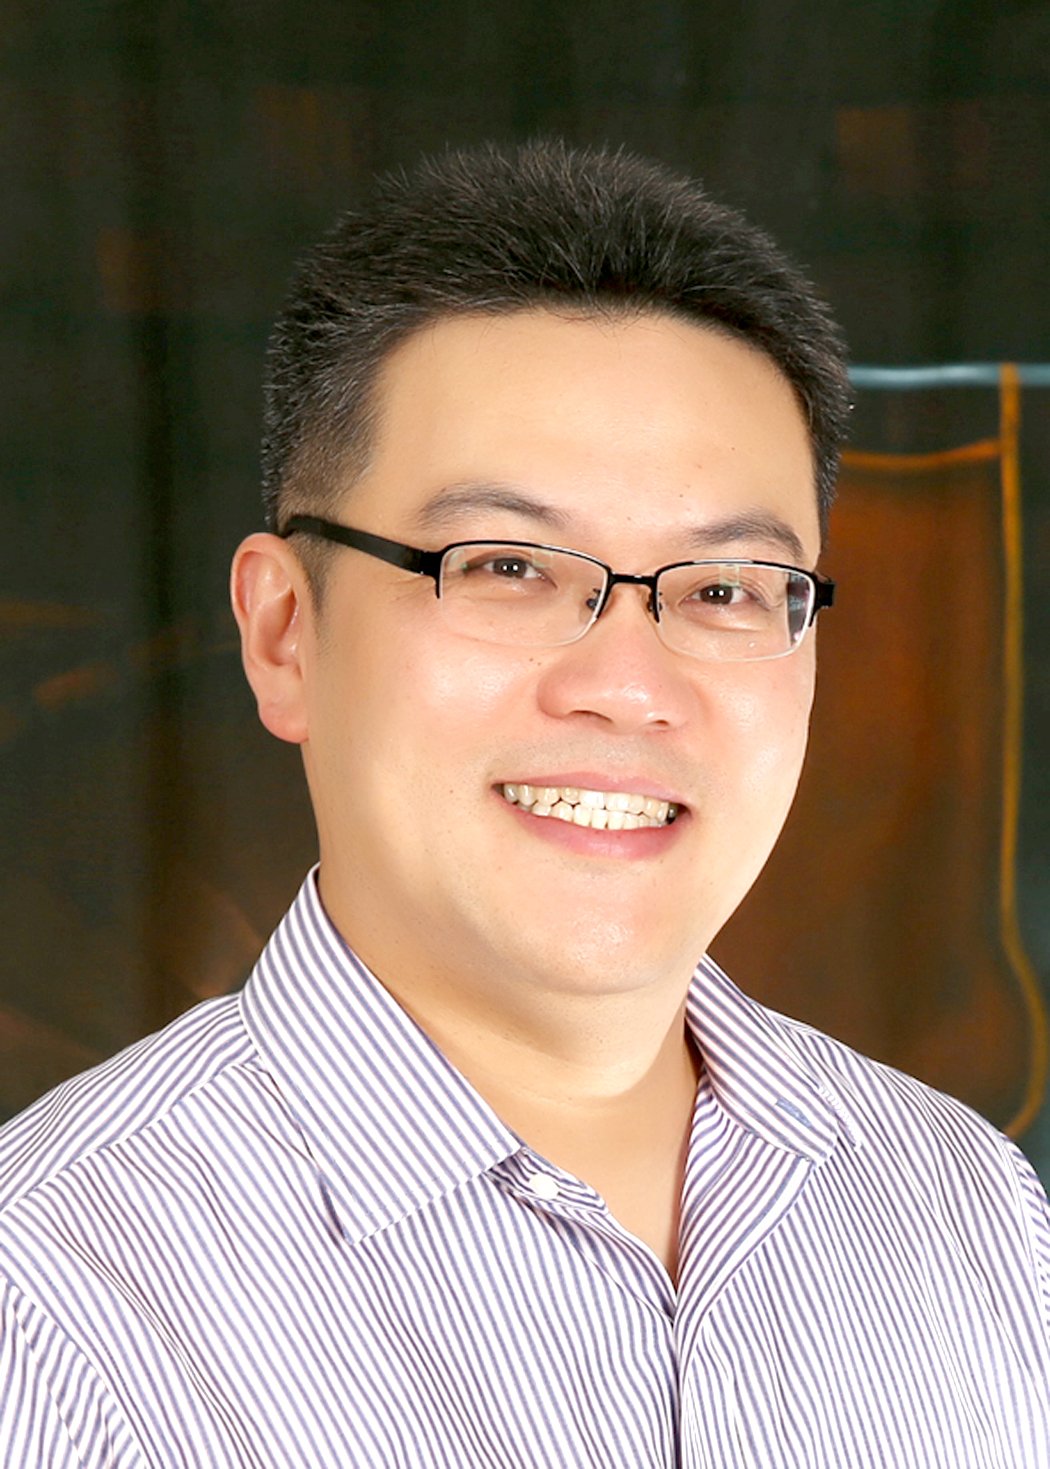 Dr. Si Hong Park, Assistant Professor at OSU, Department of Food Science and Technology